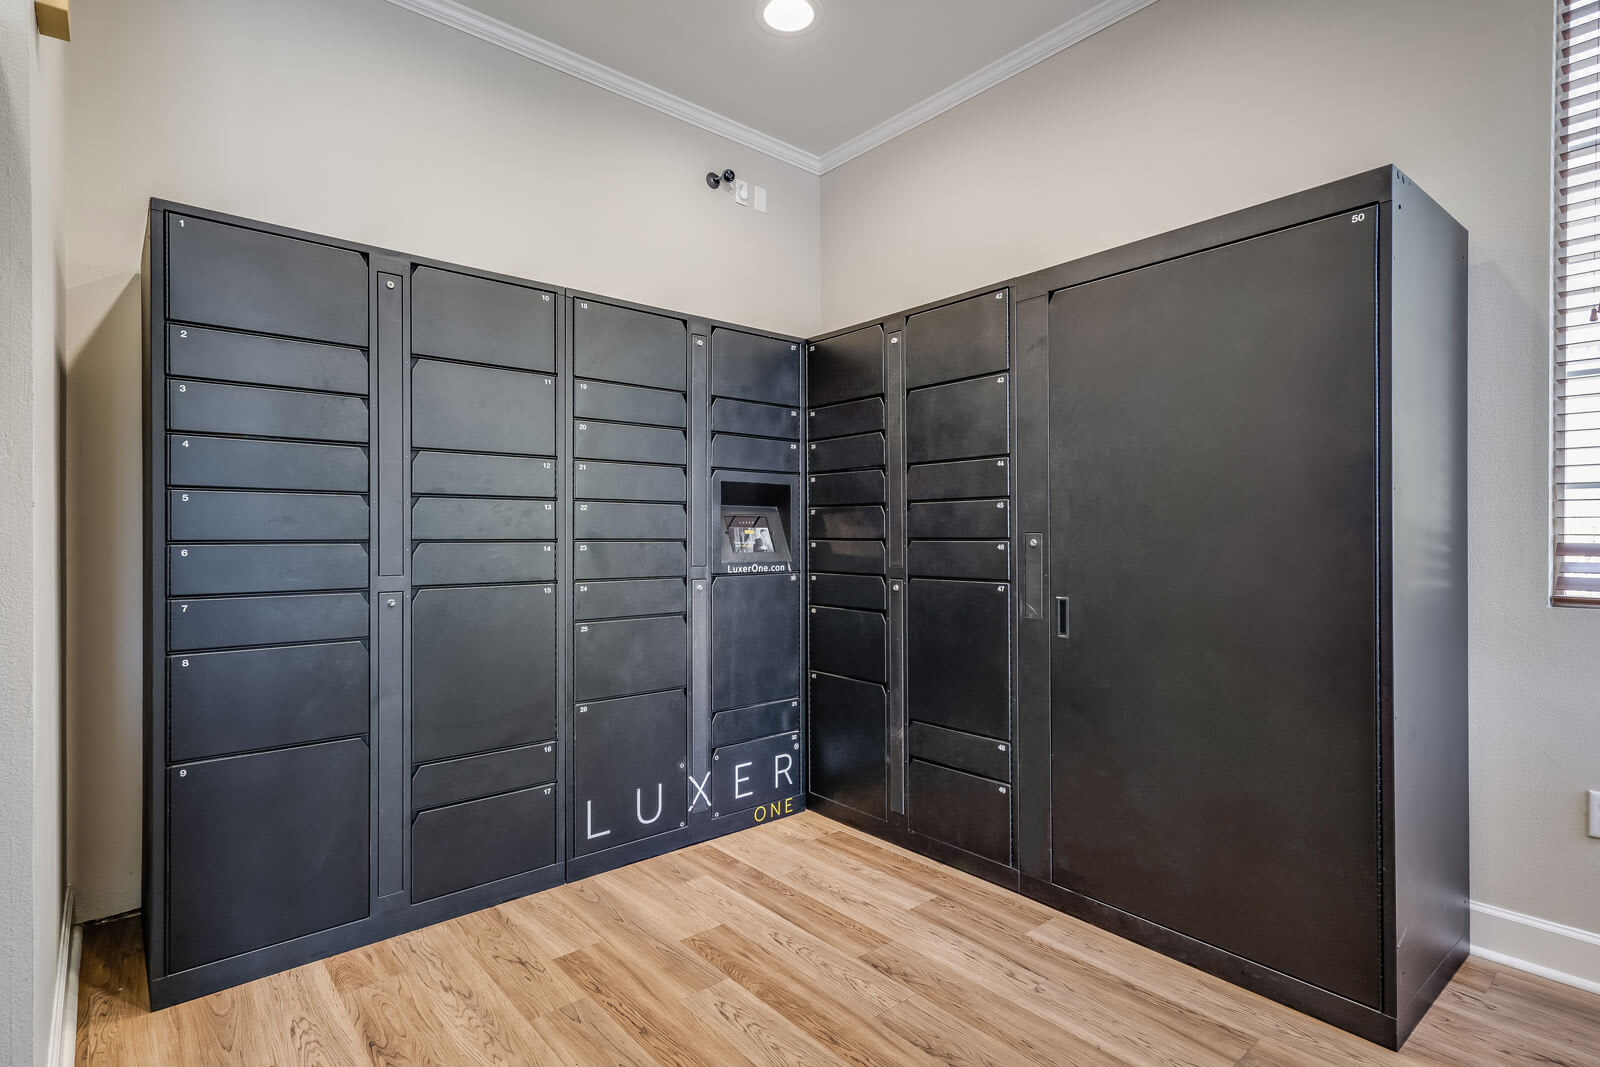 24/7 Package Receiving with LuxerOne at Pavona Apartments, San Jose, California